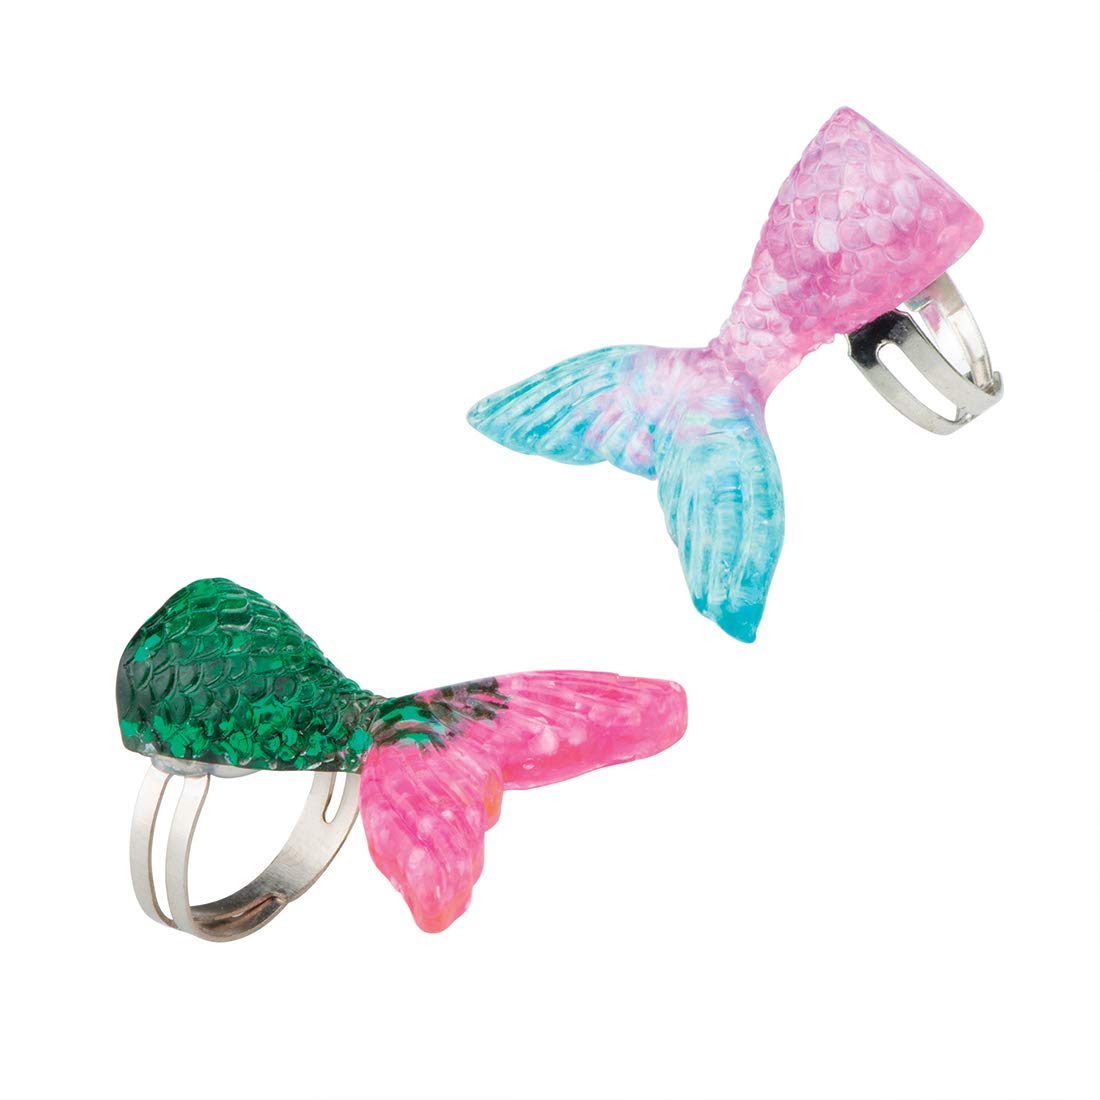 Mermaid Glitter Rings - Prizes and Giveaways - 36 per Pack